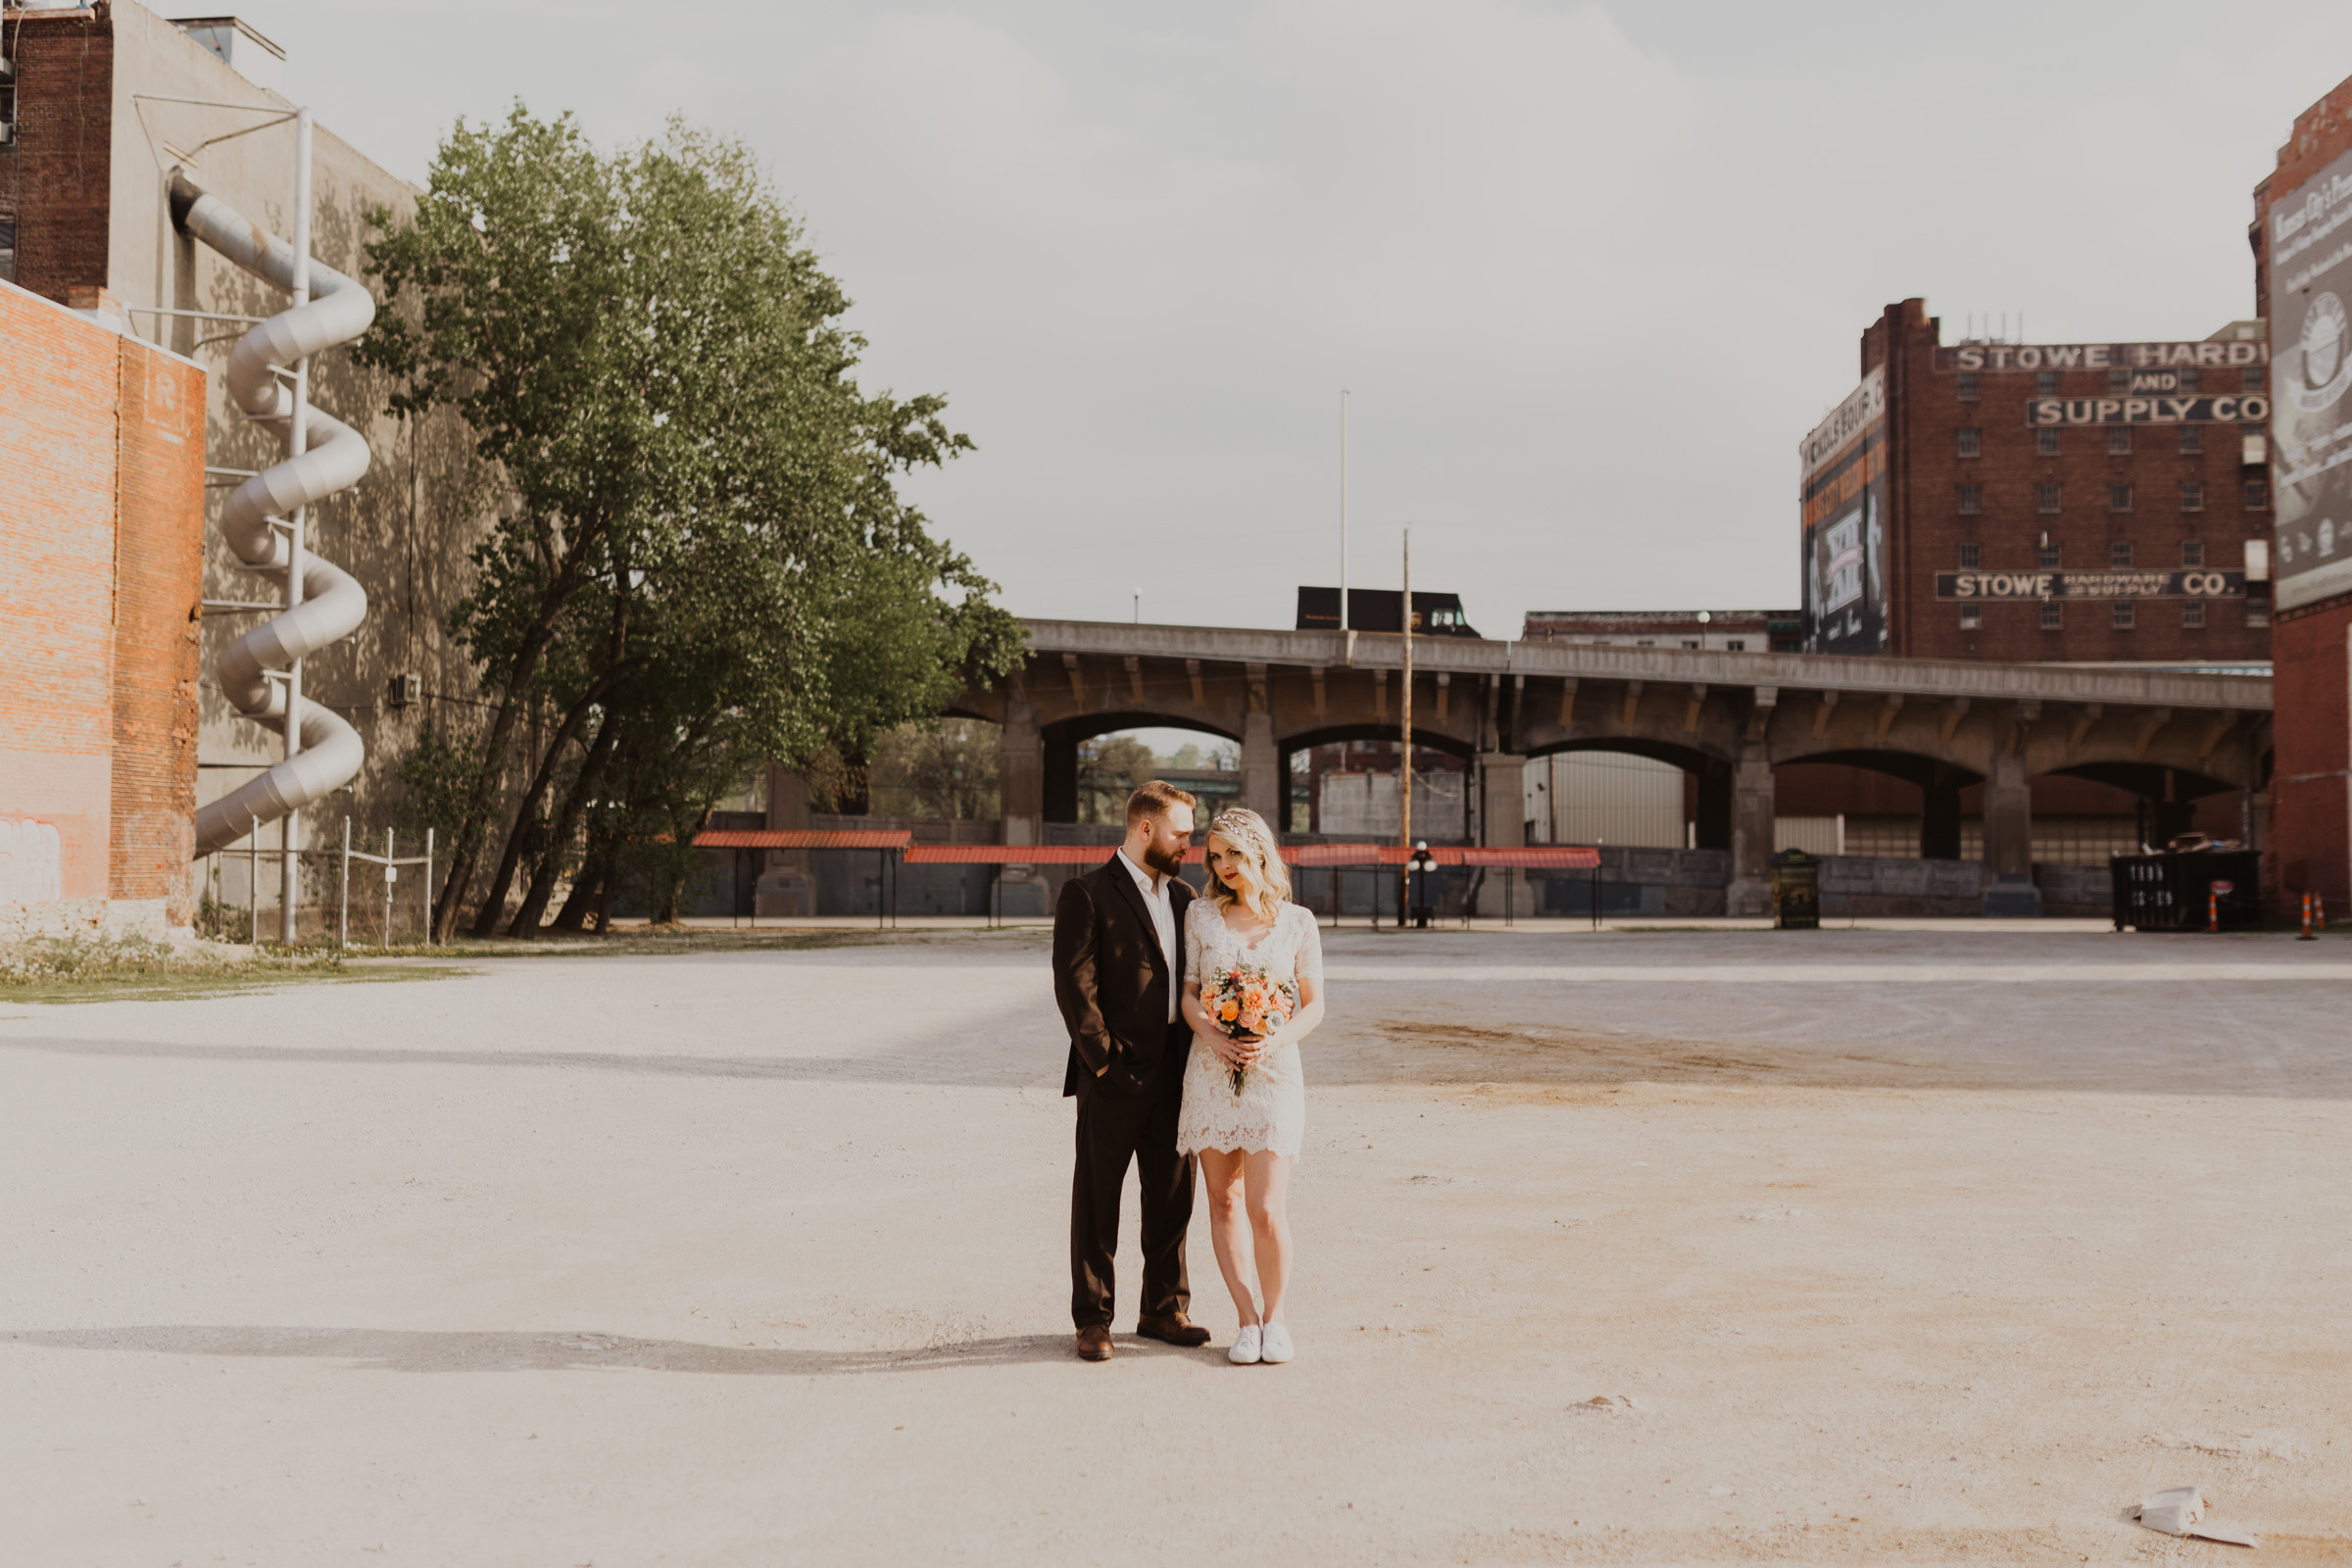 alyssa barletter photography styled shoot wedding inspiration kansas city west bottoms photographer motorcycle edgy intimate-30.jpg